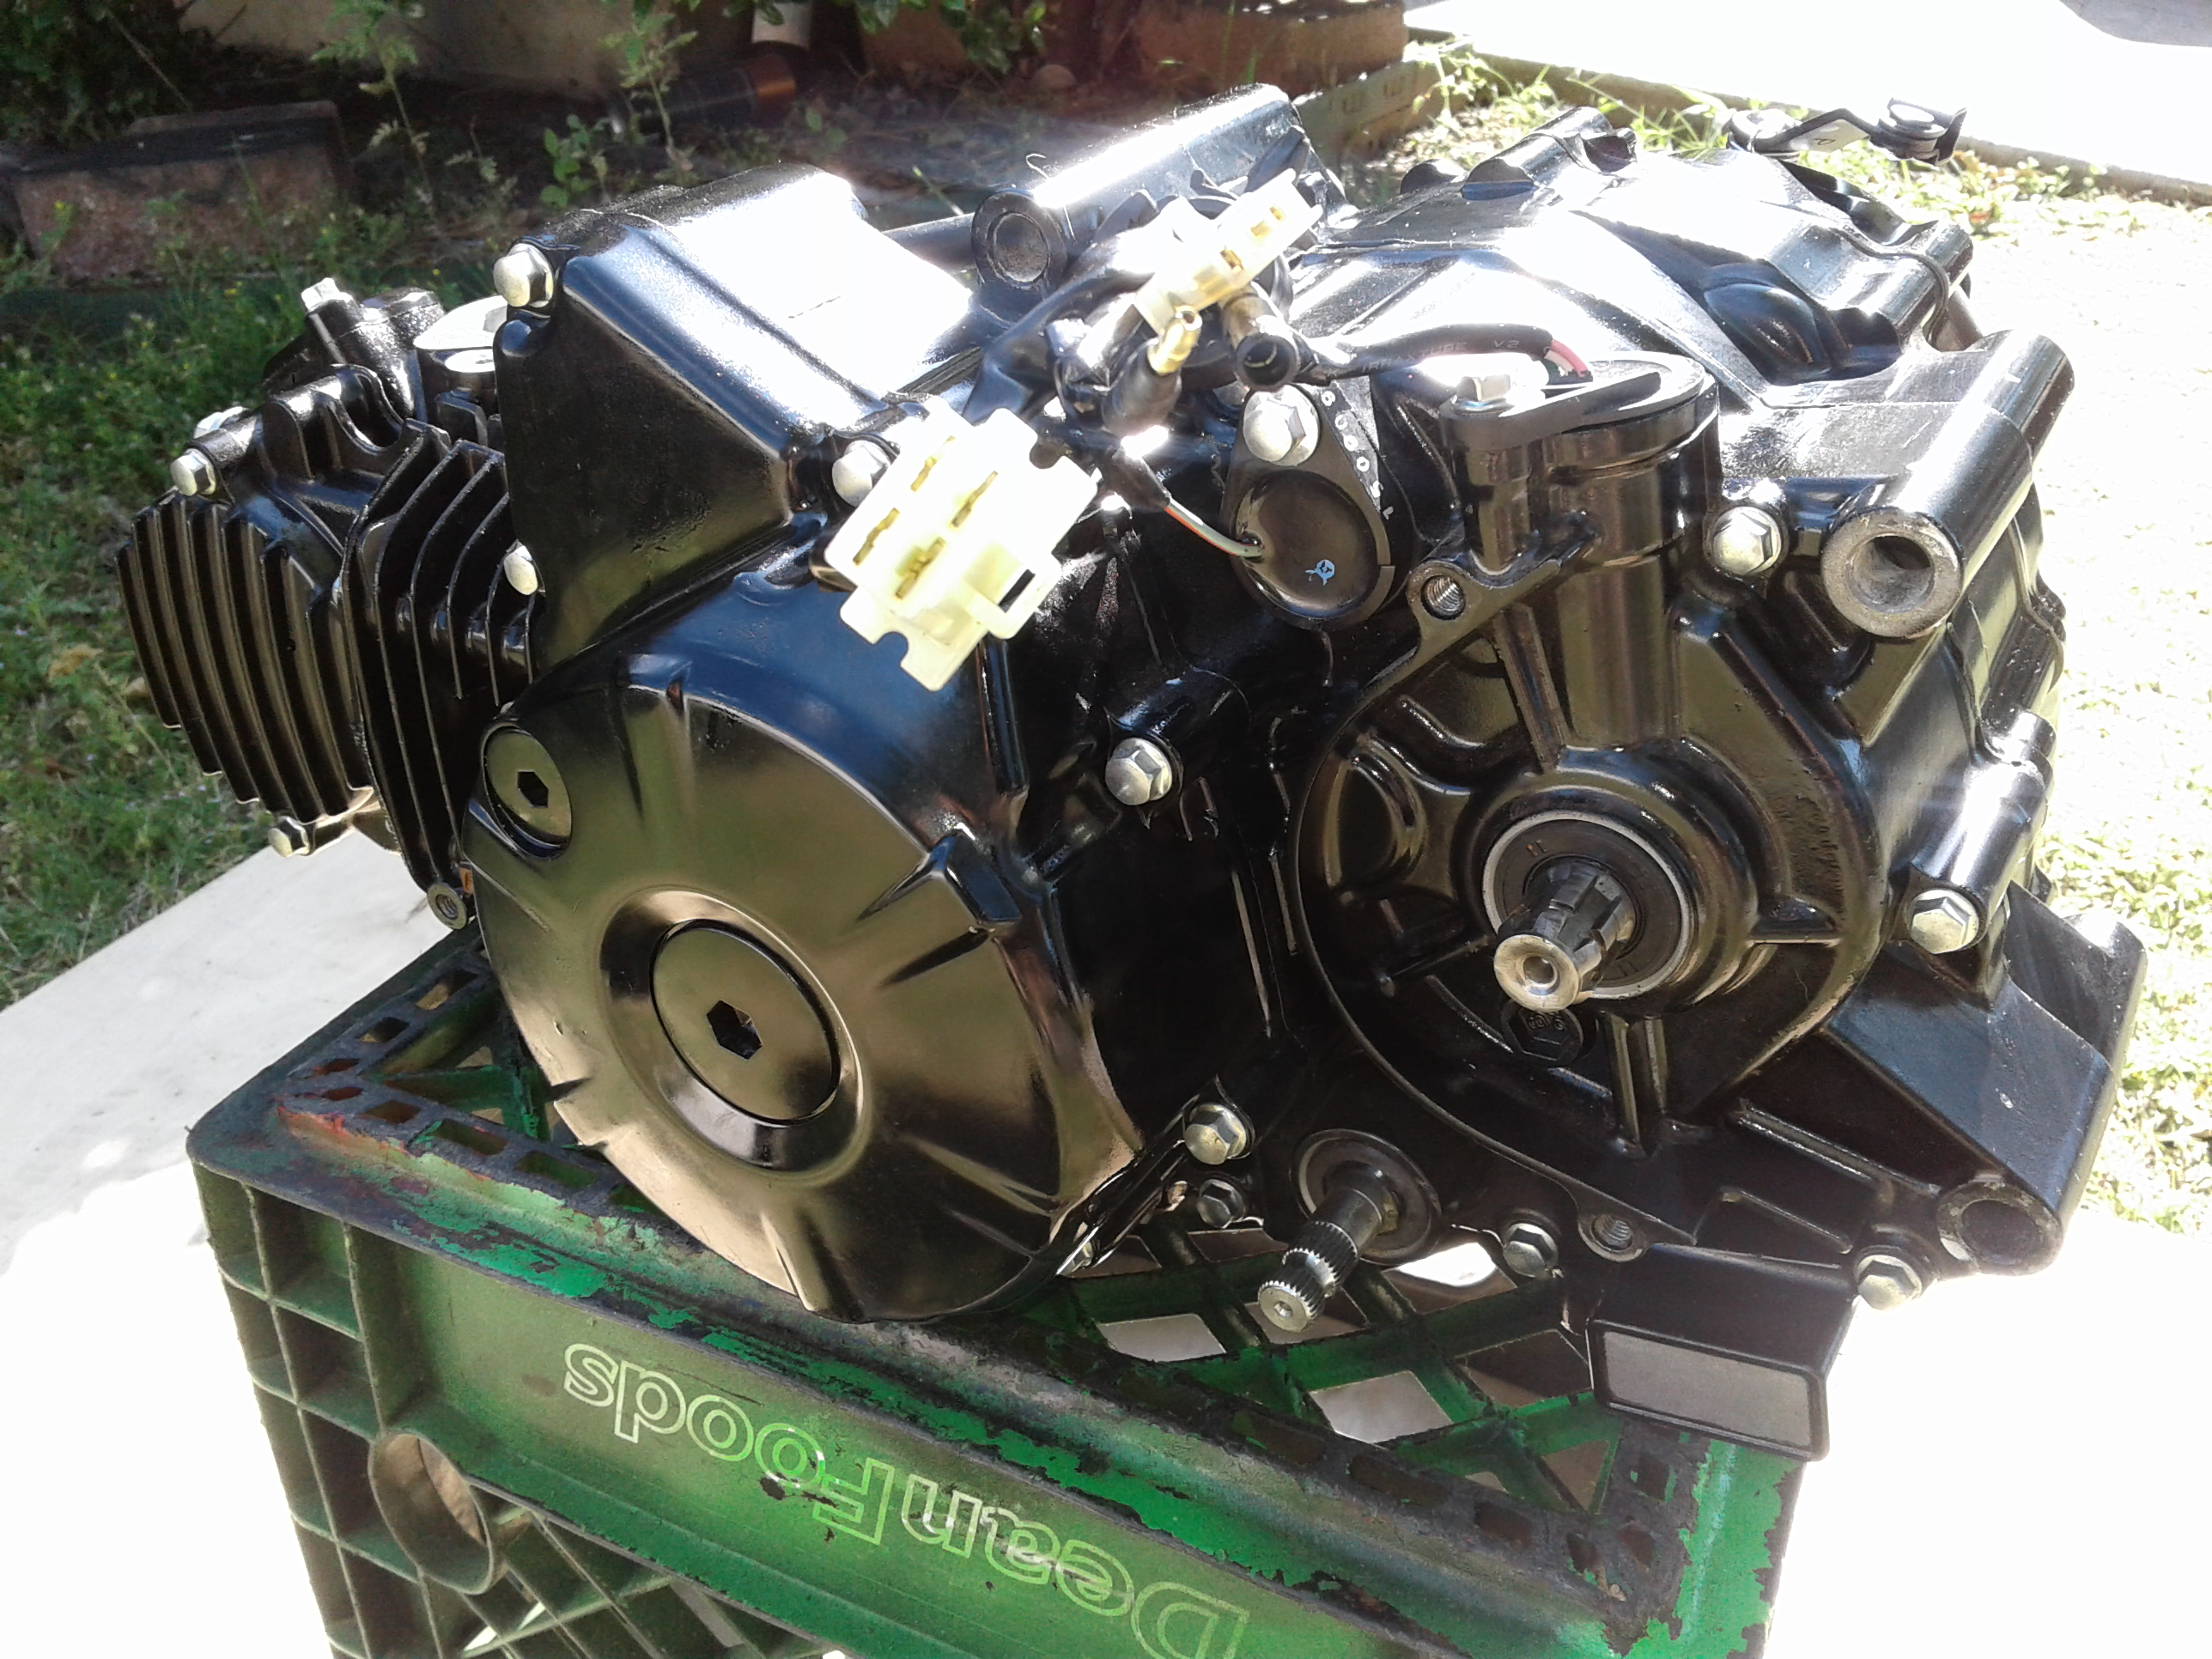 Finbro 235cc motor for sale